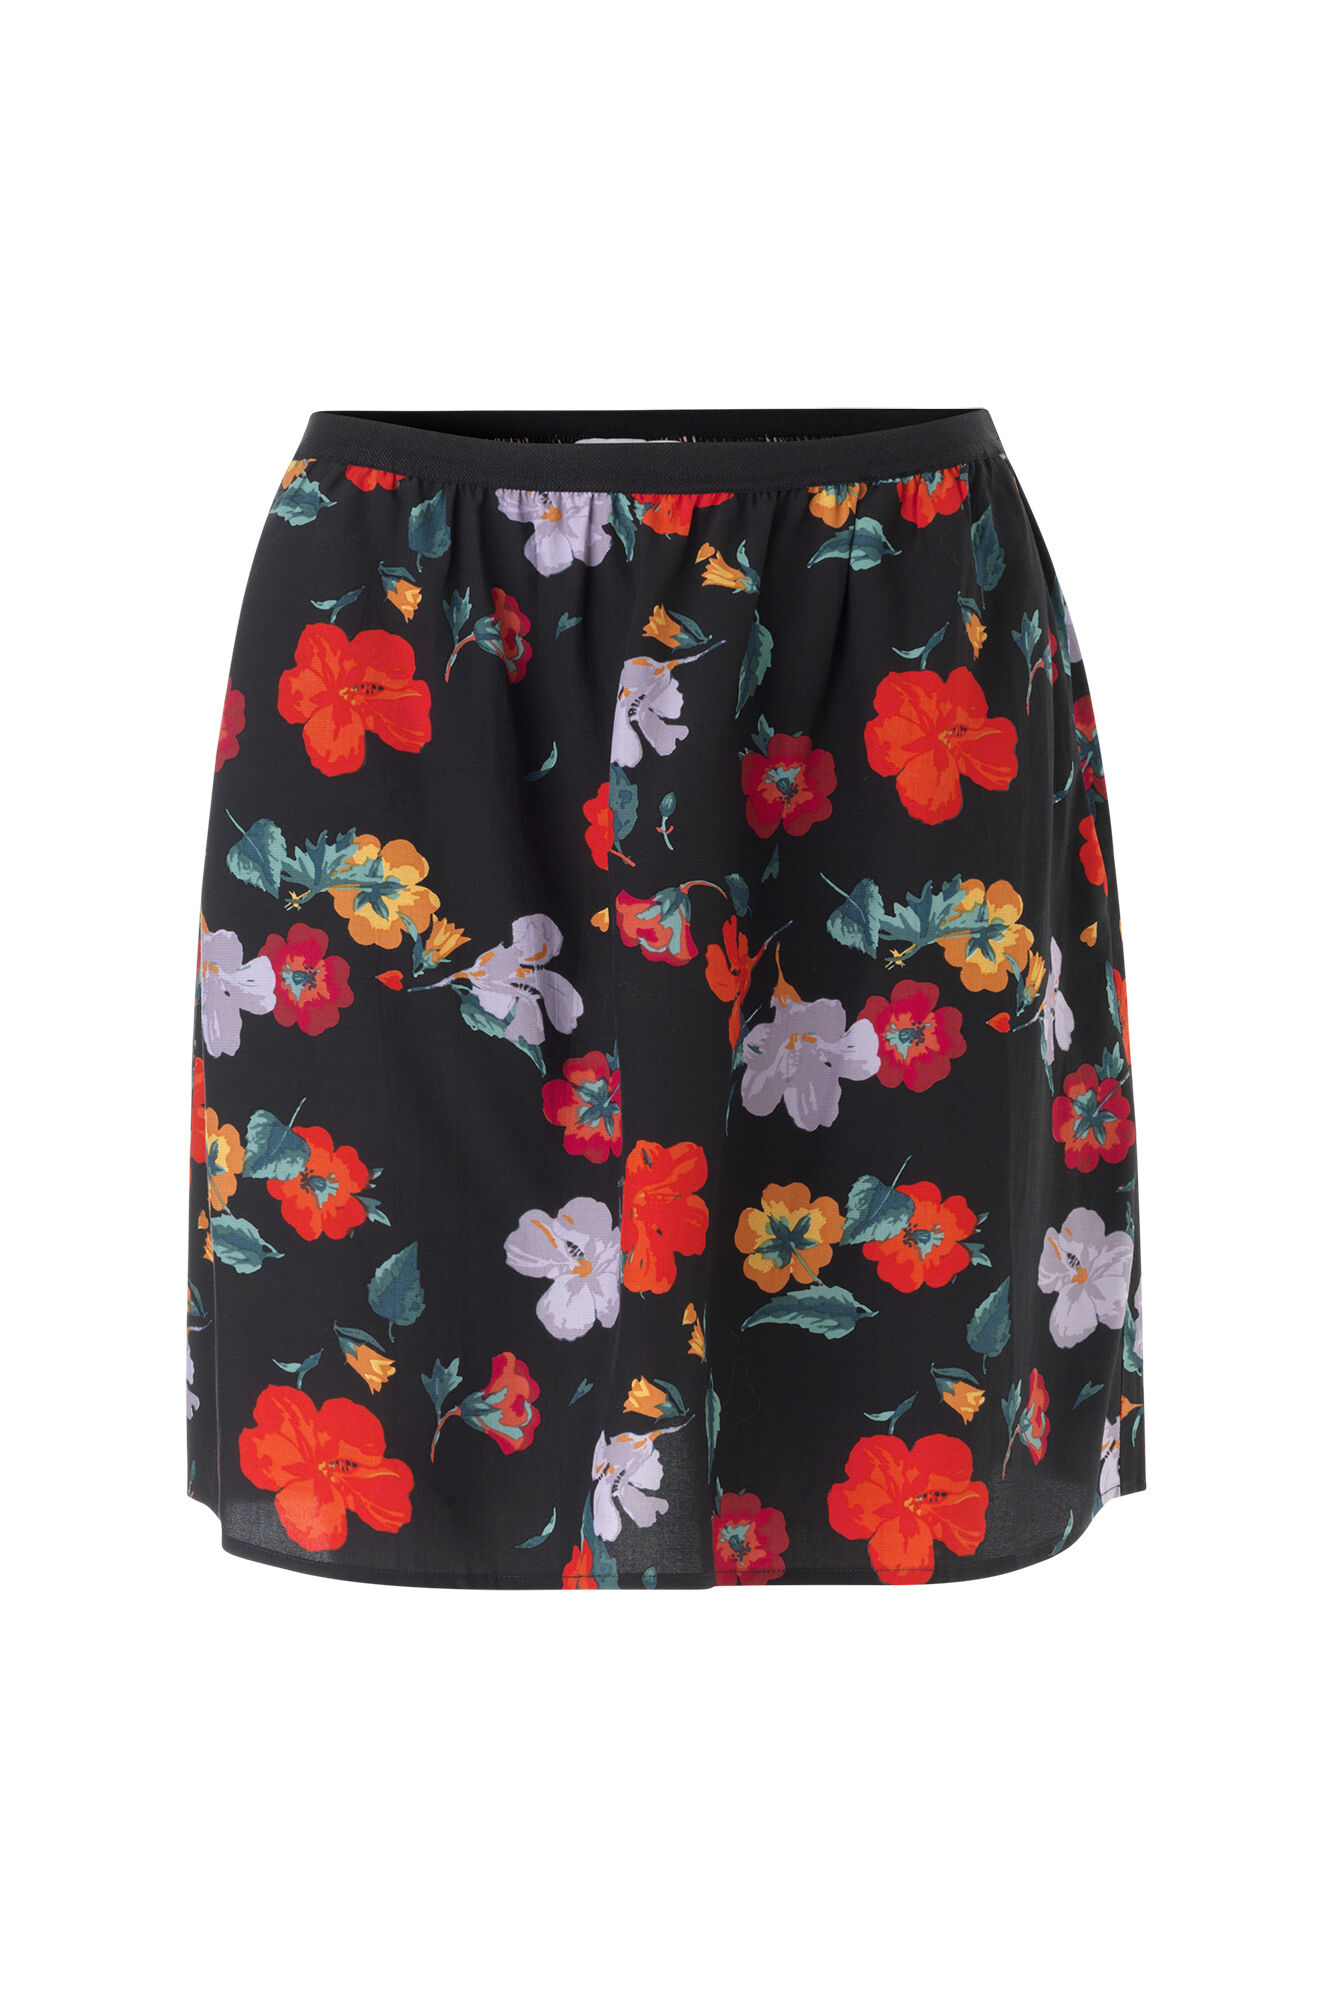 ENPOLAR SKIRT AOP 6486, FLOWER FIELD AOP